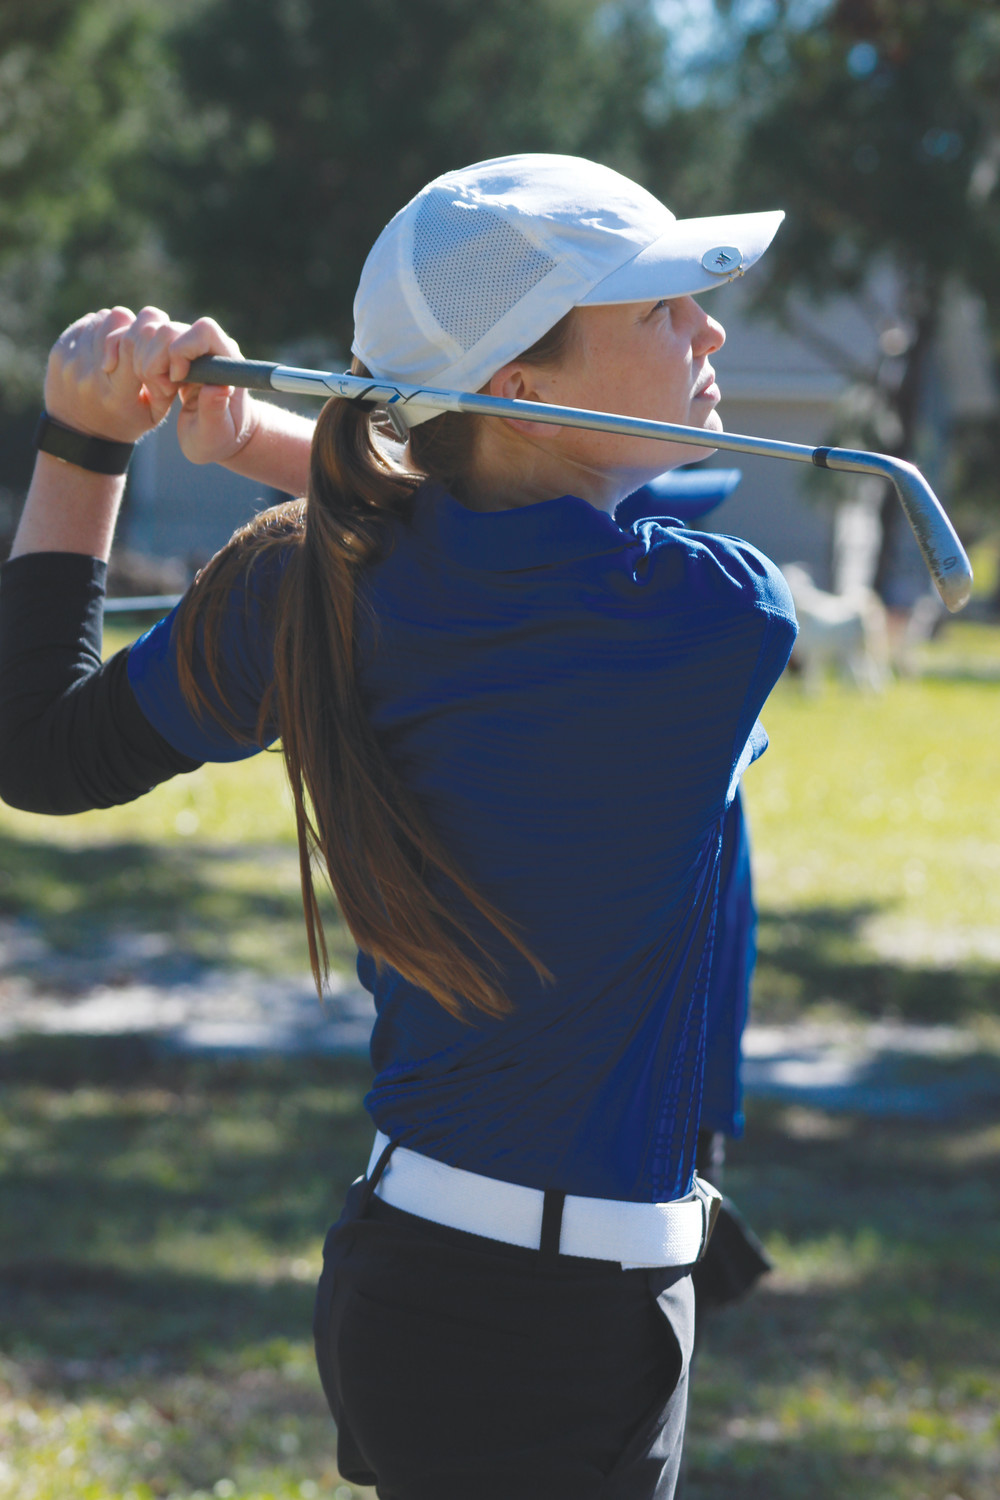 Keystone Heights golfer Camille Jackson benefits from having her own driving range on the family 53-acre farm along with a bunker hole and a putting green.